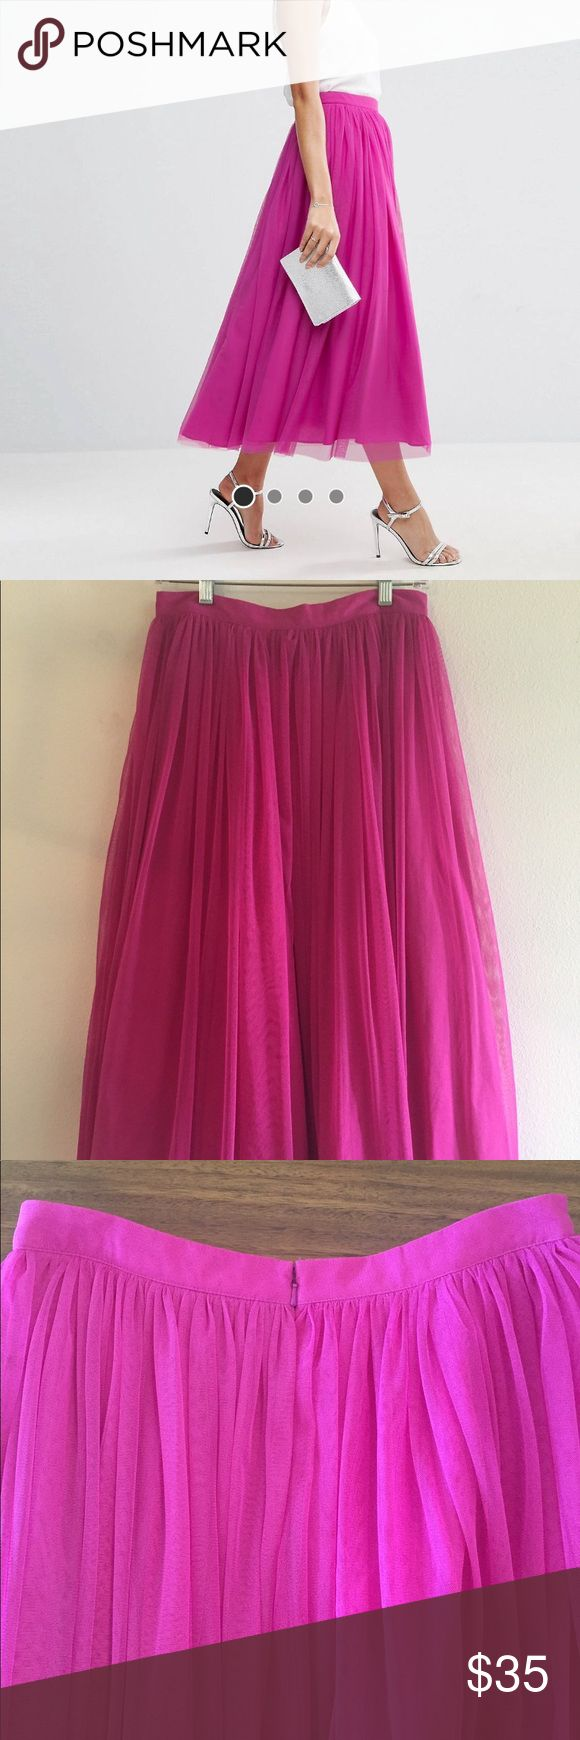 ASOS Tulle Prom Skirt - hot pink Tulle overlay with multi layers. Midi skirt. Falls below the knee and above the ankle. Purchased in August 2017 for a wedding. Only worn once. Love it! Asos Skirts Midi